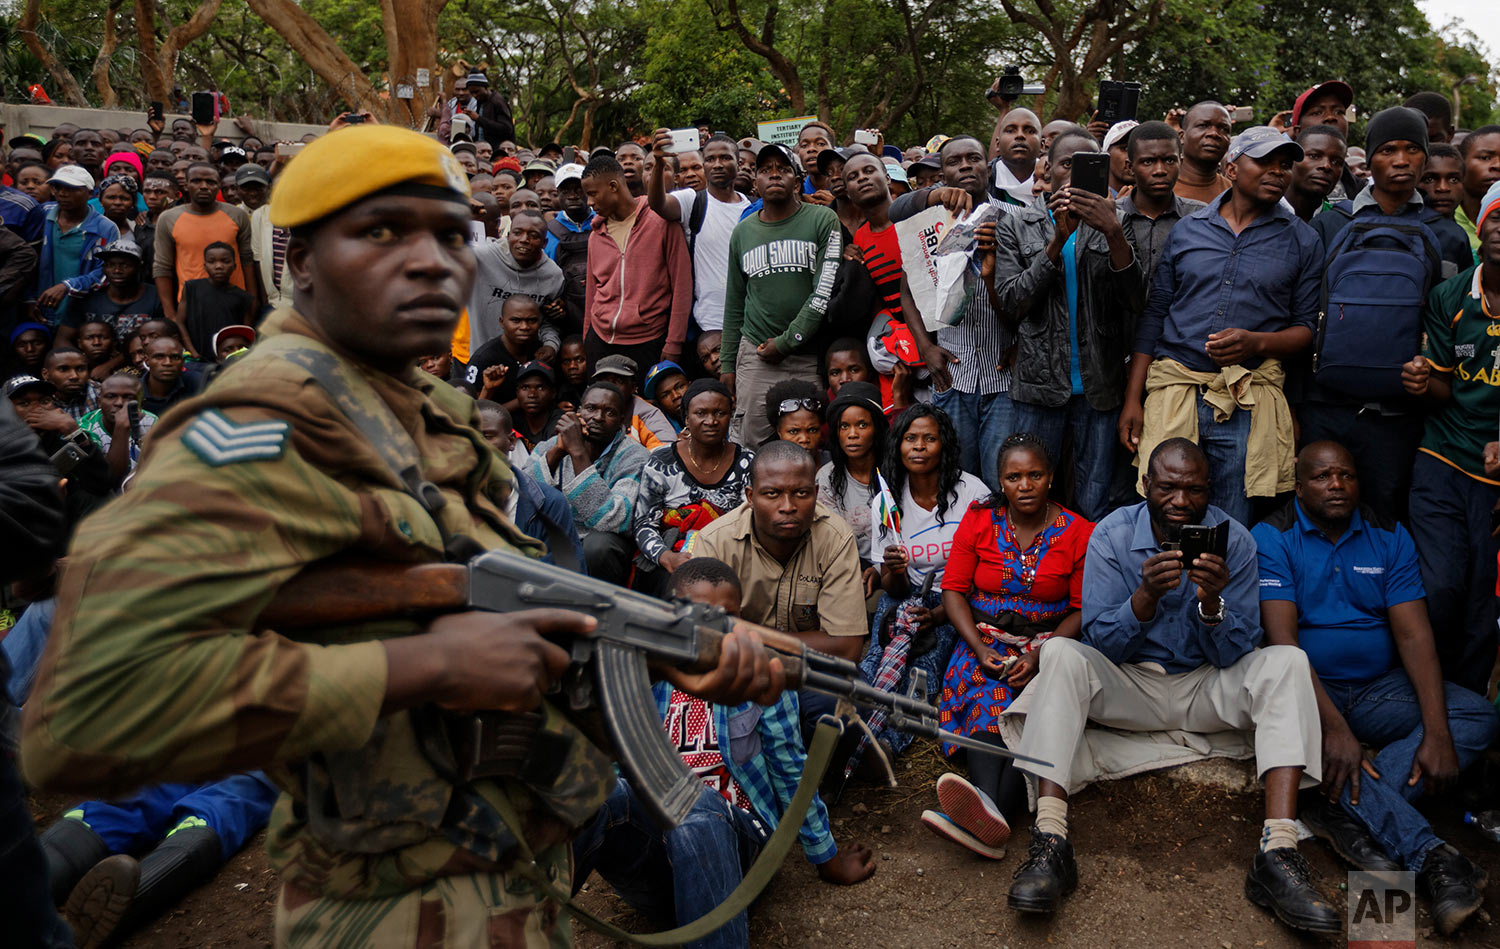 An army soldier stands guard as protesters demanding President Robert Mugabe stands down gather on the road leading to State House in Harare, Zimbabwe Saturday, Nov. 18, 2017. In a euphoric gathering that just days ago would have drawn a police crackdown, crowds marched through Zimbabwe's capital on Saturday to demand the departure of President Robert Mugabe, one of Africa's last remaining liberation leaders, after nearly four decades in power. (AP Photo/Ben Curtis)